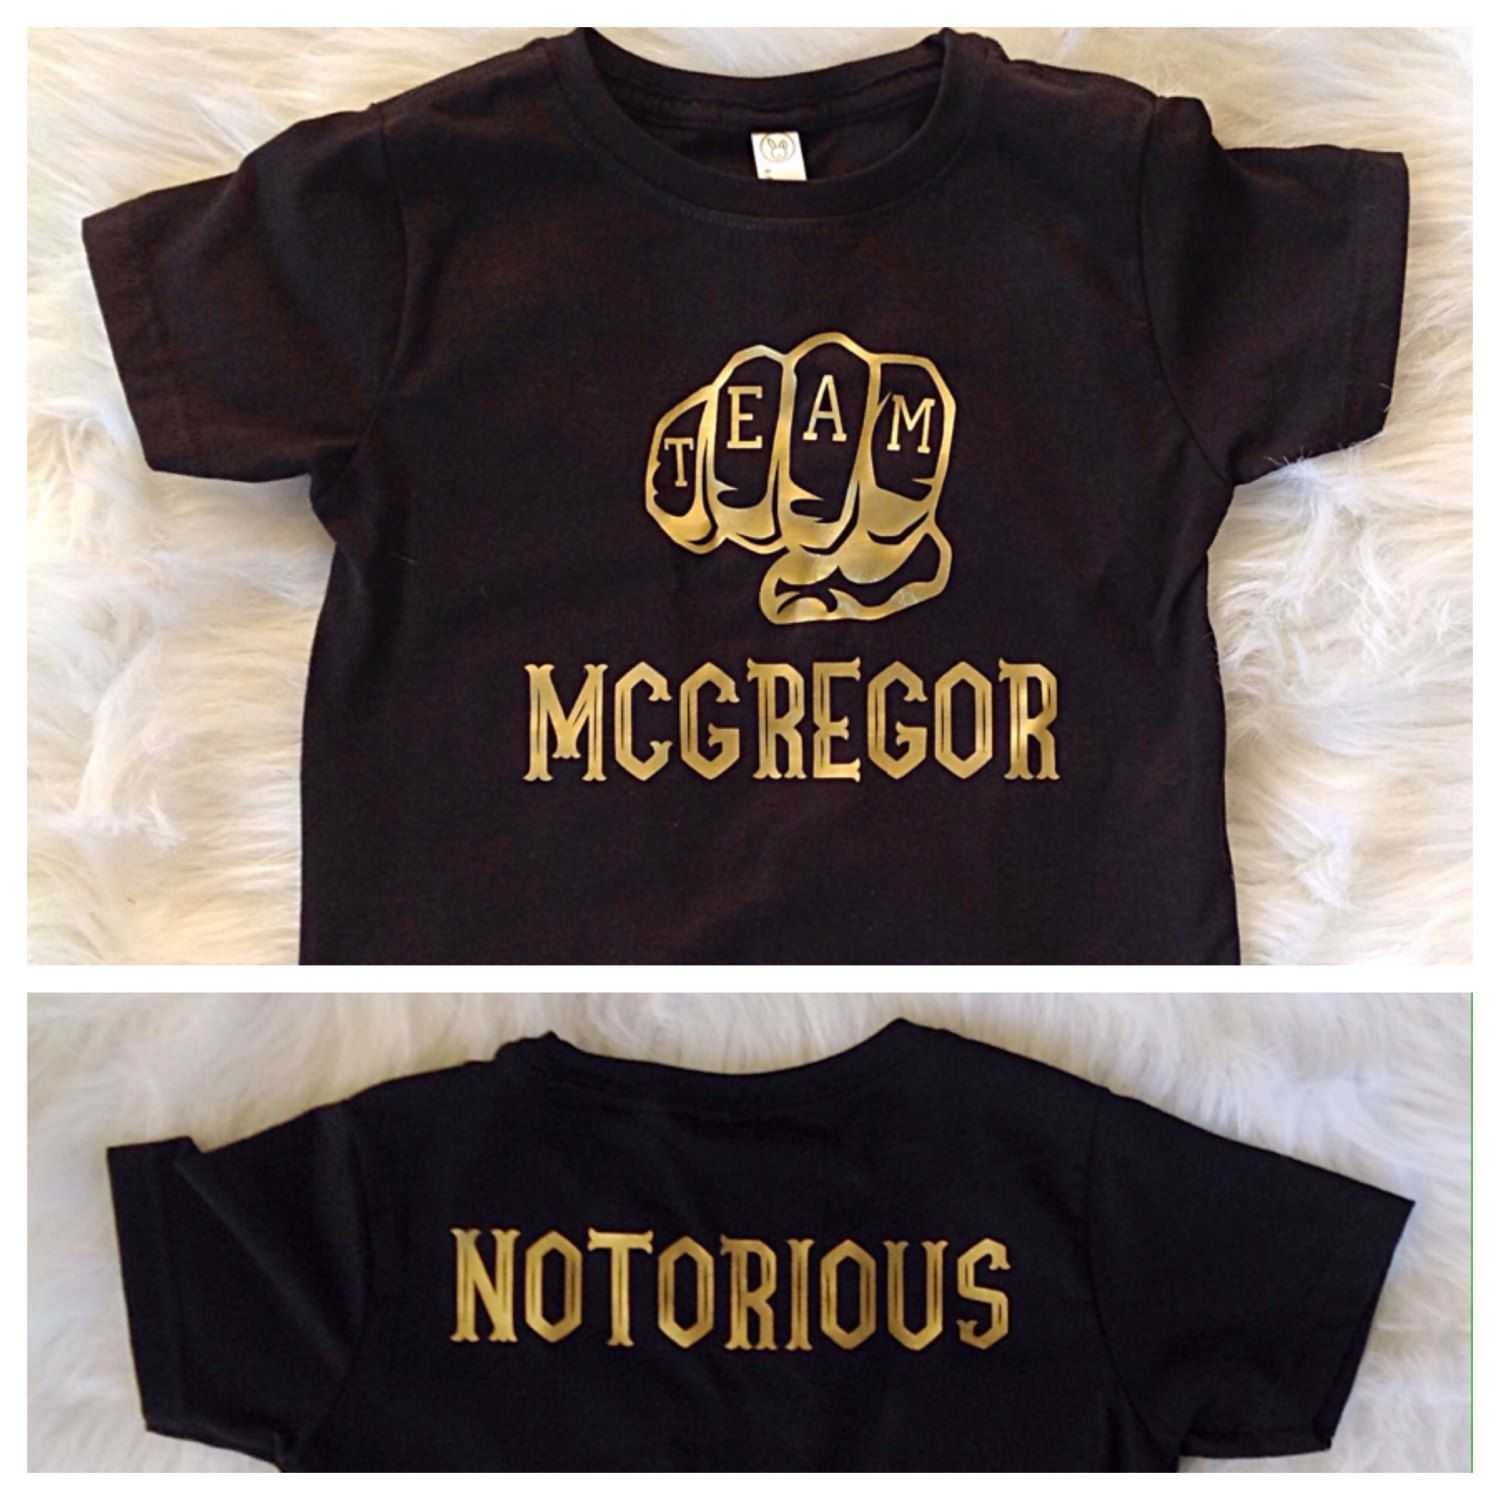 8dd2e45d5 Team McGregor/ The Notorious/ Conor McGregor toddler shirt/ Gold print/  baby gift/ UFC fan/ Unisex toddler shirt by Liljopeepshop on Etsy